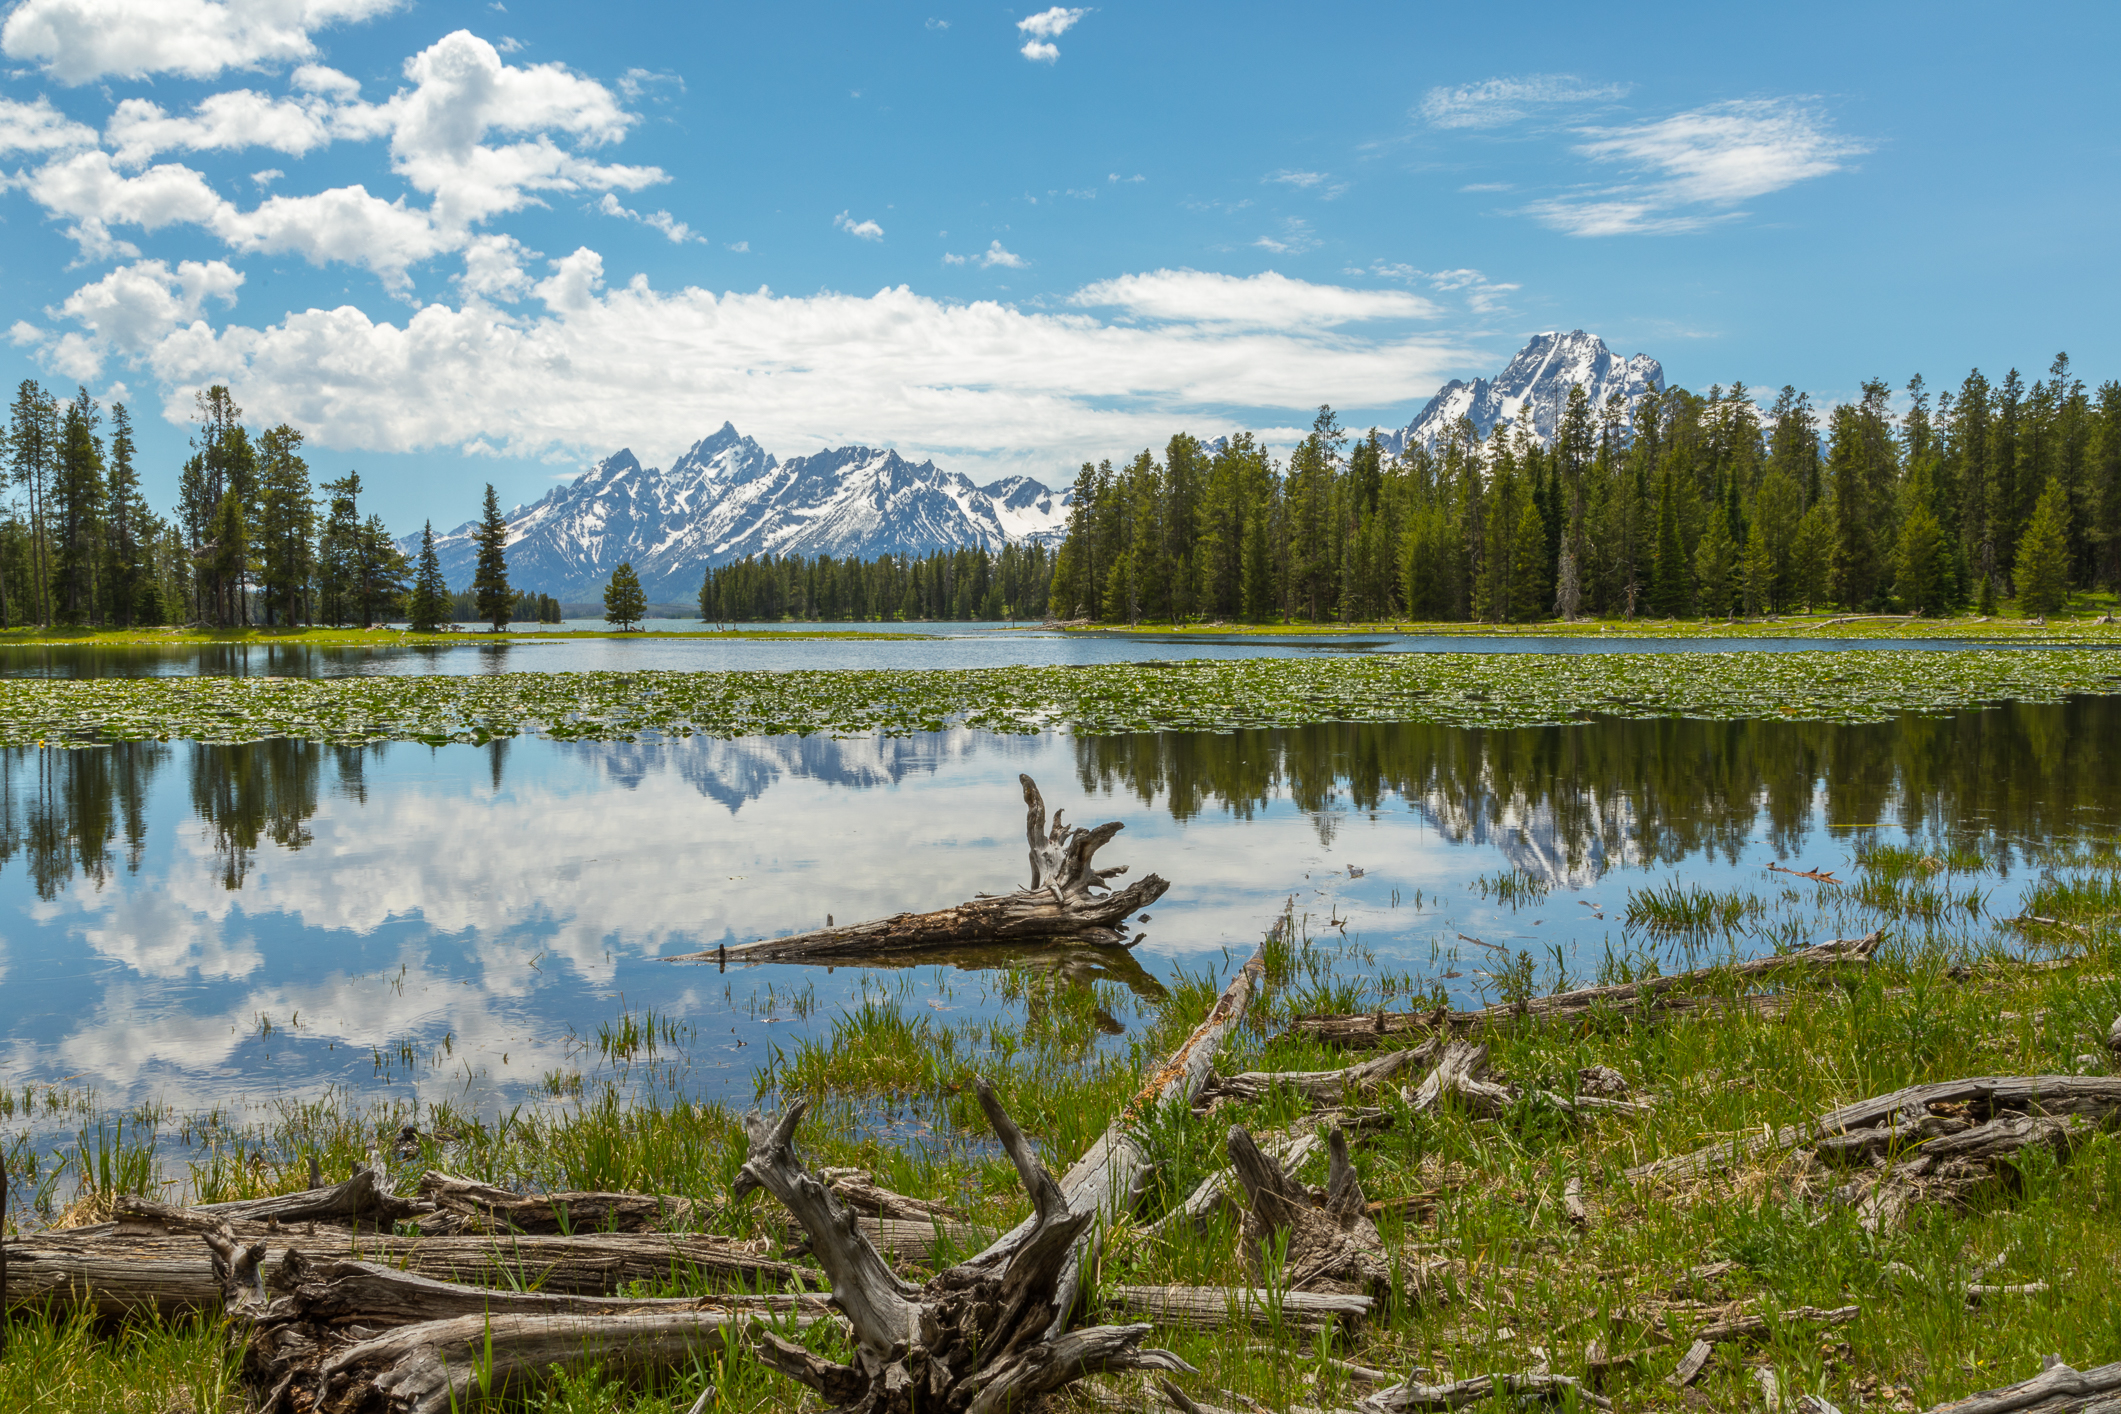 Colter Bay, Image # 3078